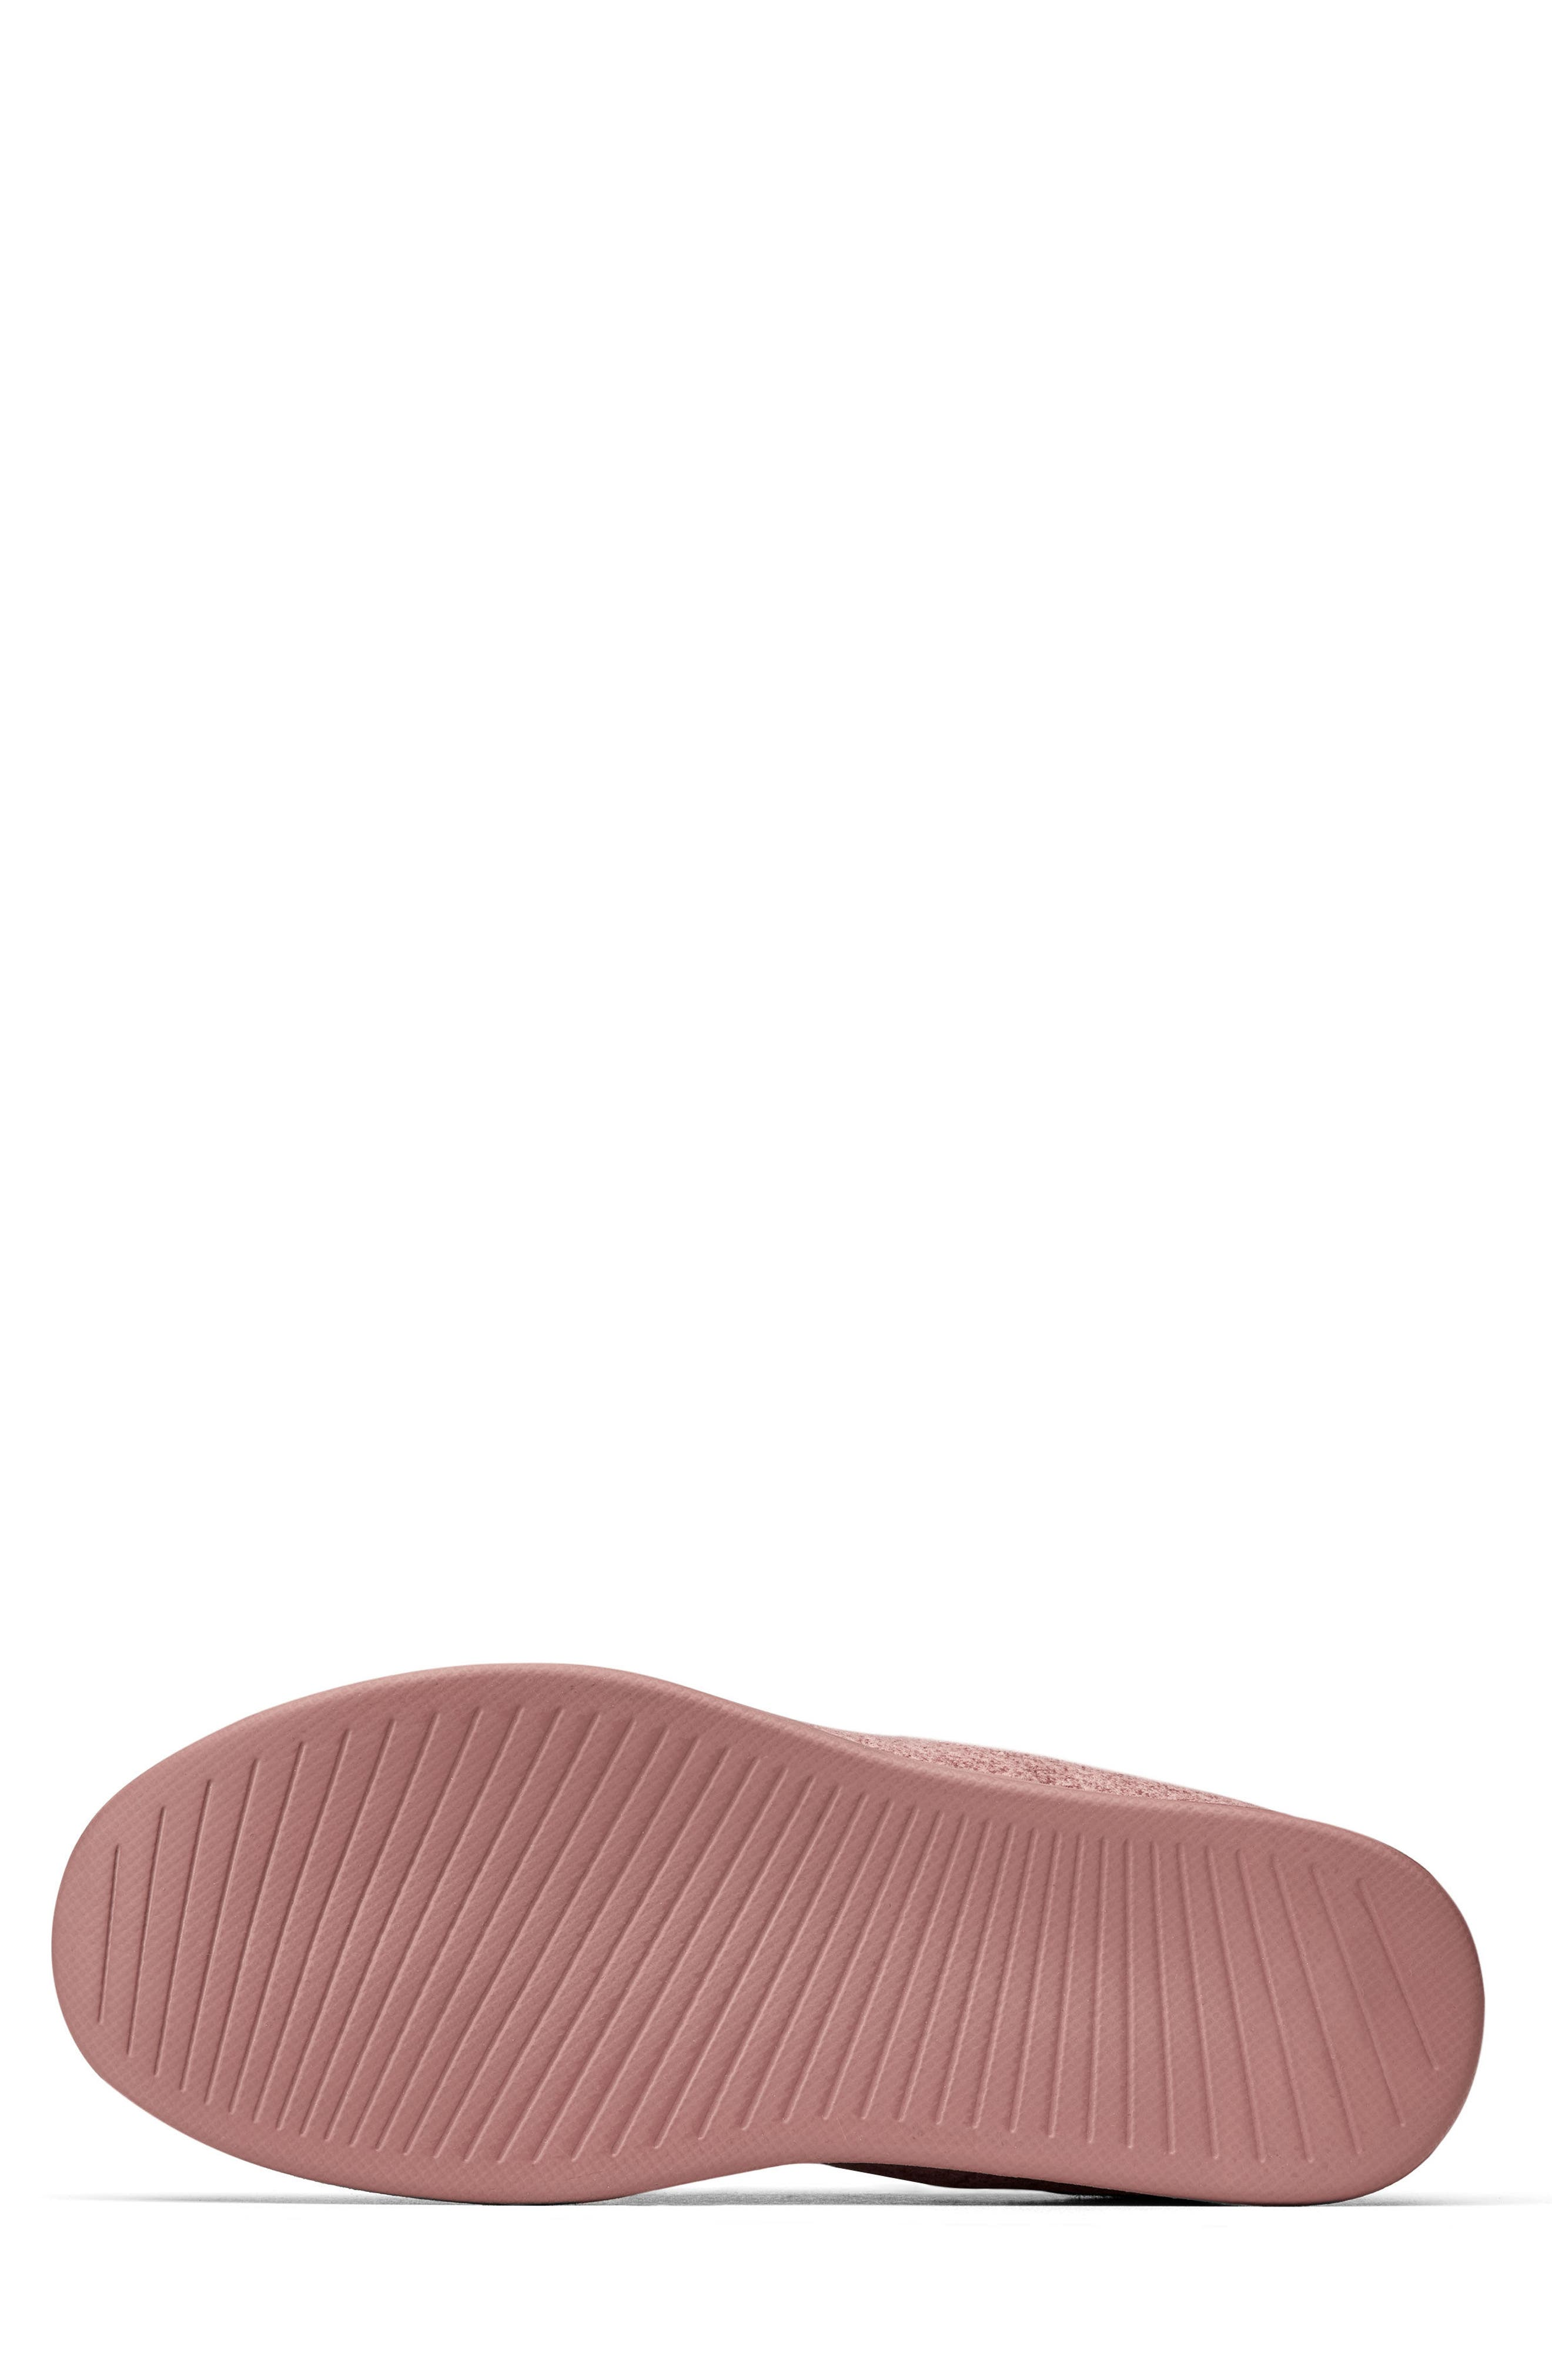 Wool Lounger,                             Alternate thumbnail 5, color,                             Tui Light Red